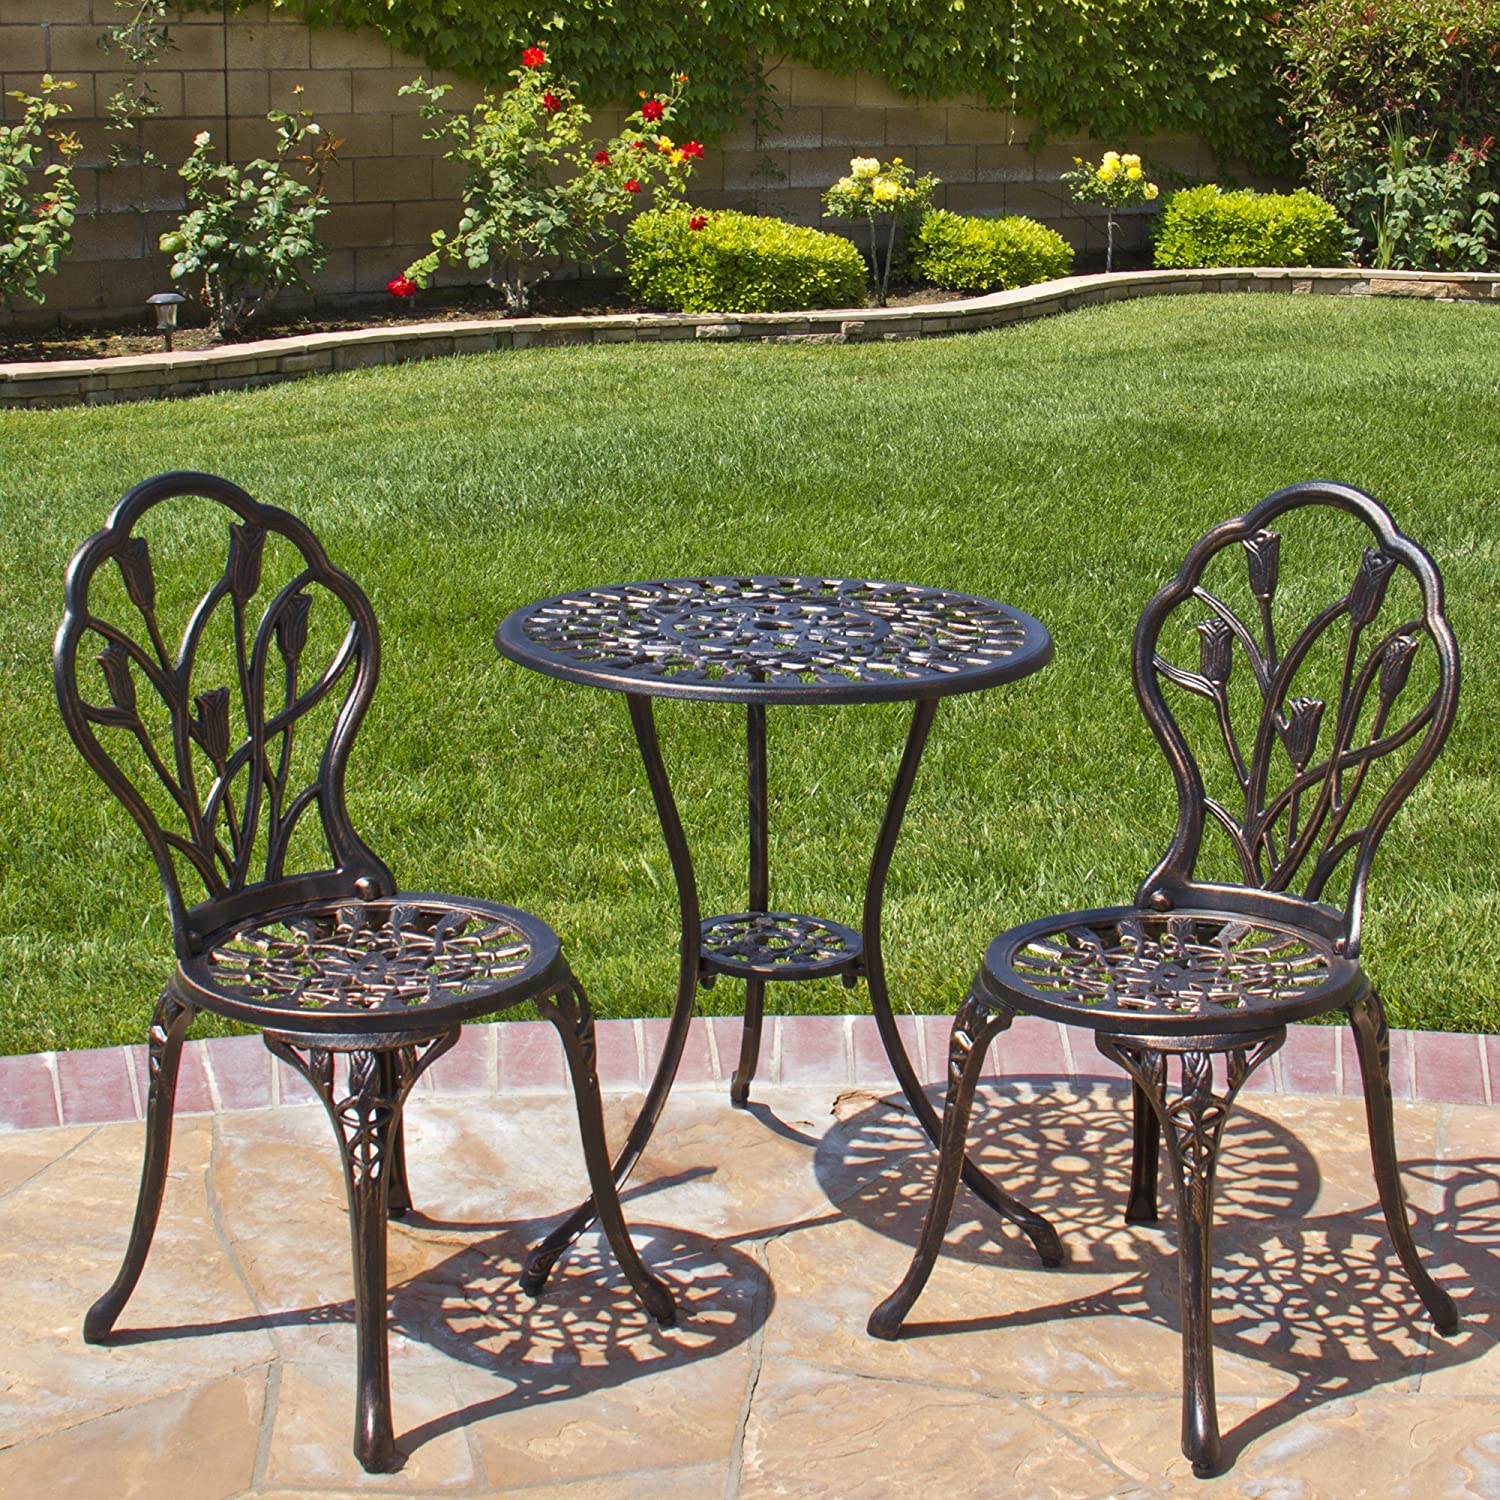 Shop Amazoncom Patio Furniture Sets